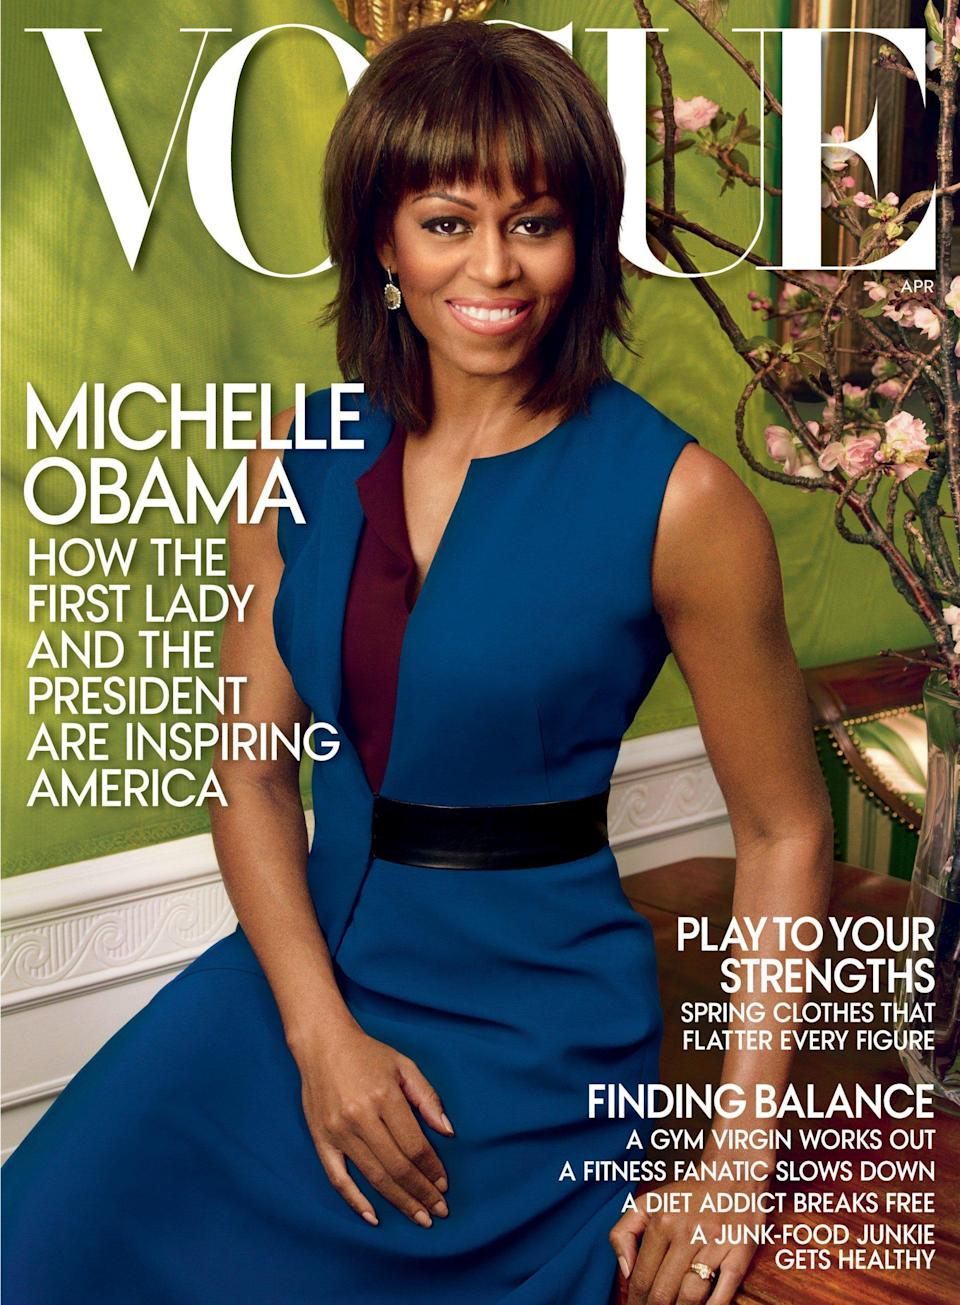 Michelle Obama on the cover of the April 2013 issue of Vogue. - Vogue